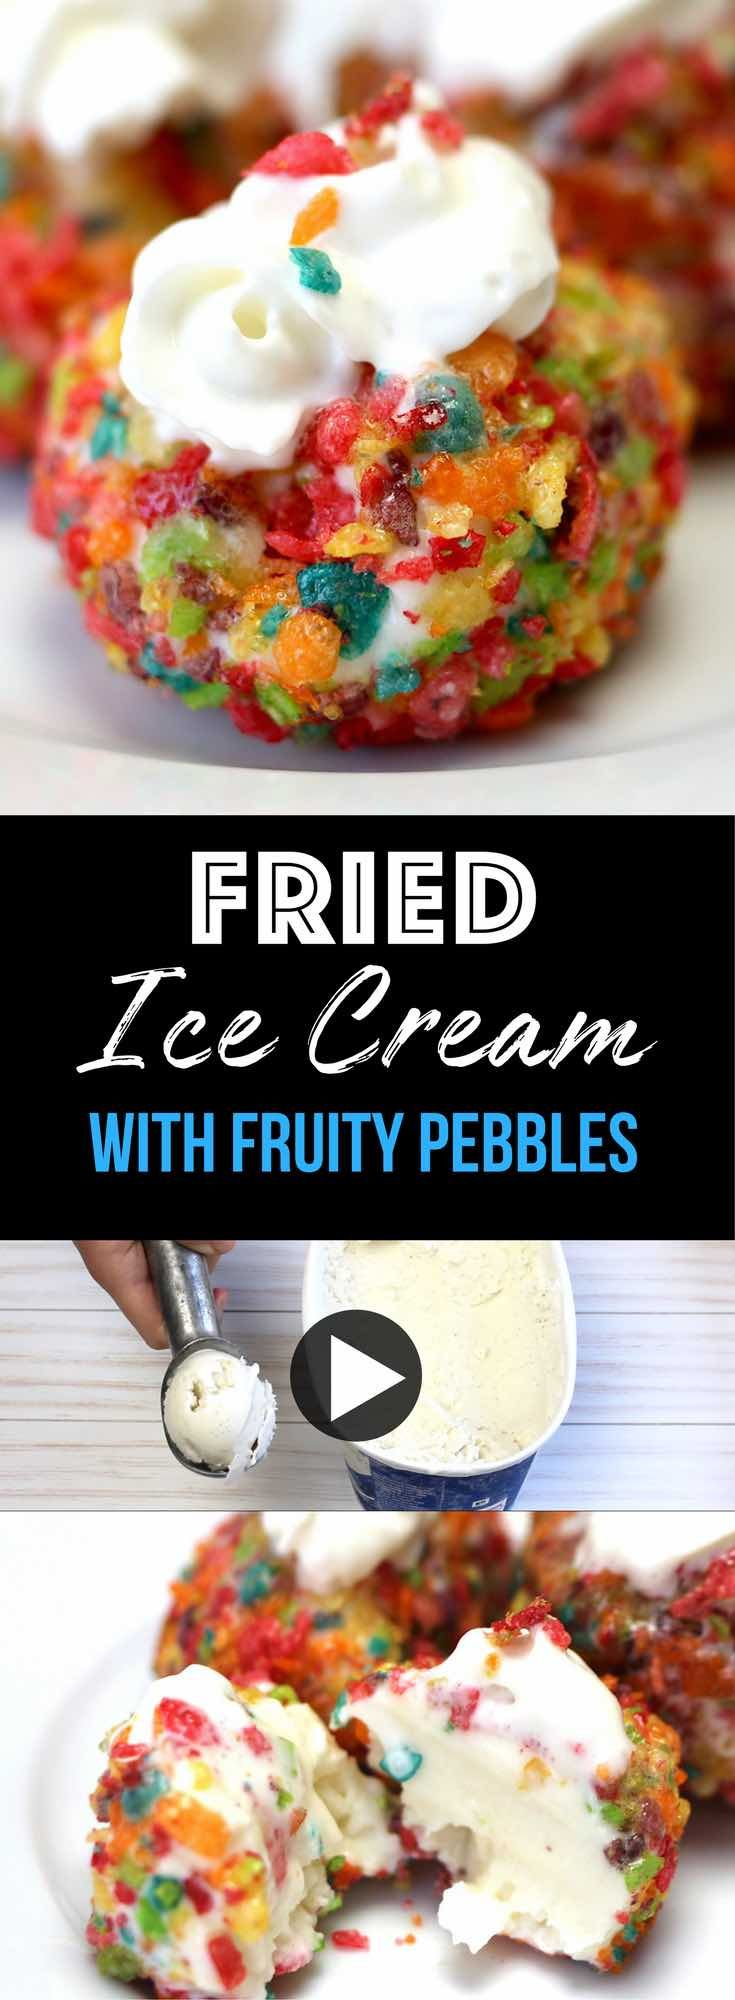 The most incredible Fried Ice Cream Dessert With Fruity Pebbles: Frozen and creamy ice cream is coved by hot, deep fried and crunchy fruity pebble cereal! Fun homemade deep fried ice cream that's super easy to make. Only 3 ingredients: your favorite ice cream, fruity pebble cereal and whipped cream! 3 Ingredient recipe. Desserts. Quick and easy recipe with video tutorial. | tipbuzz.com